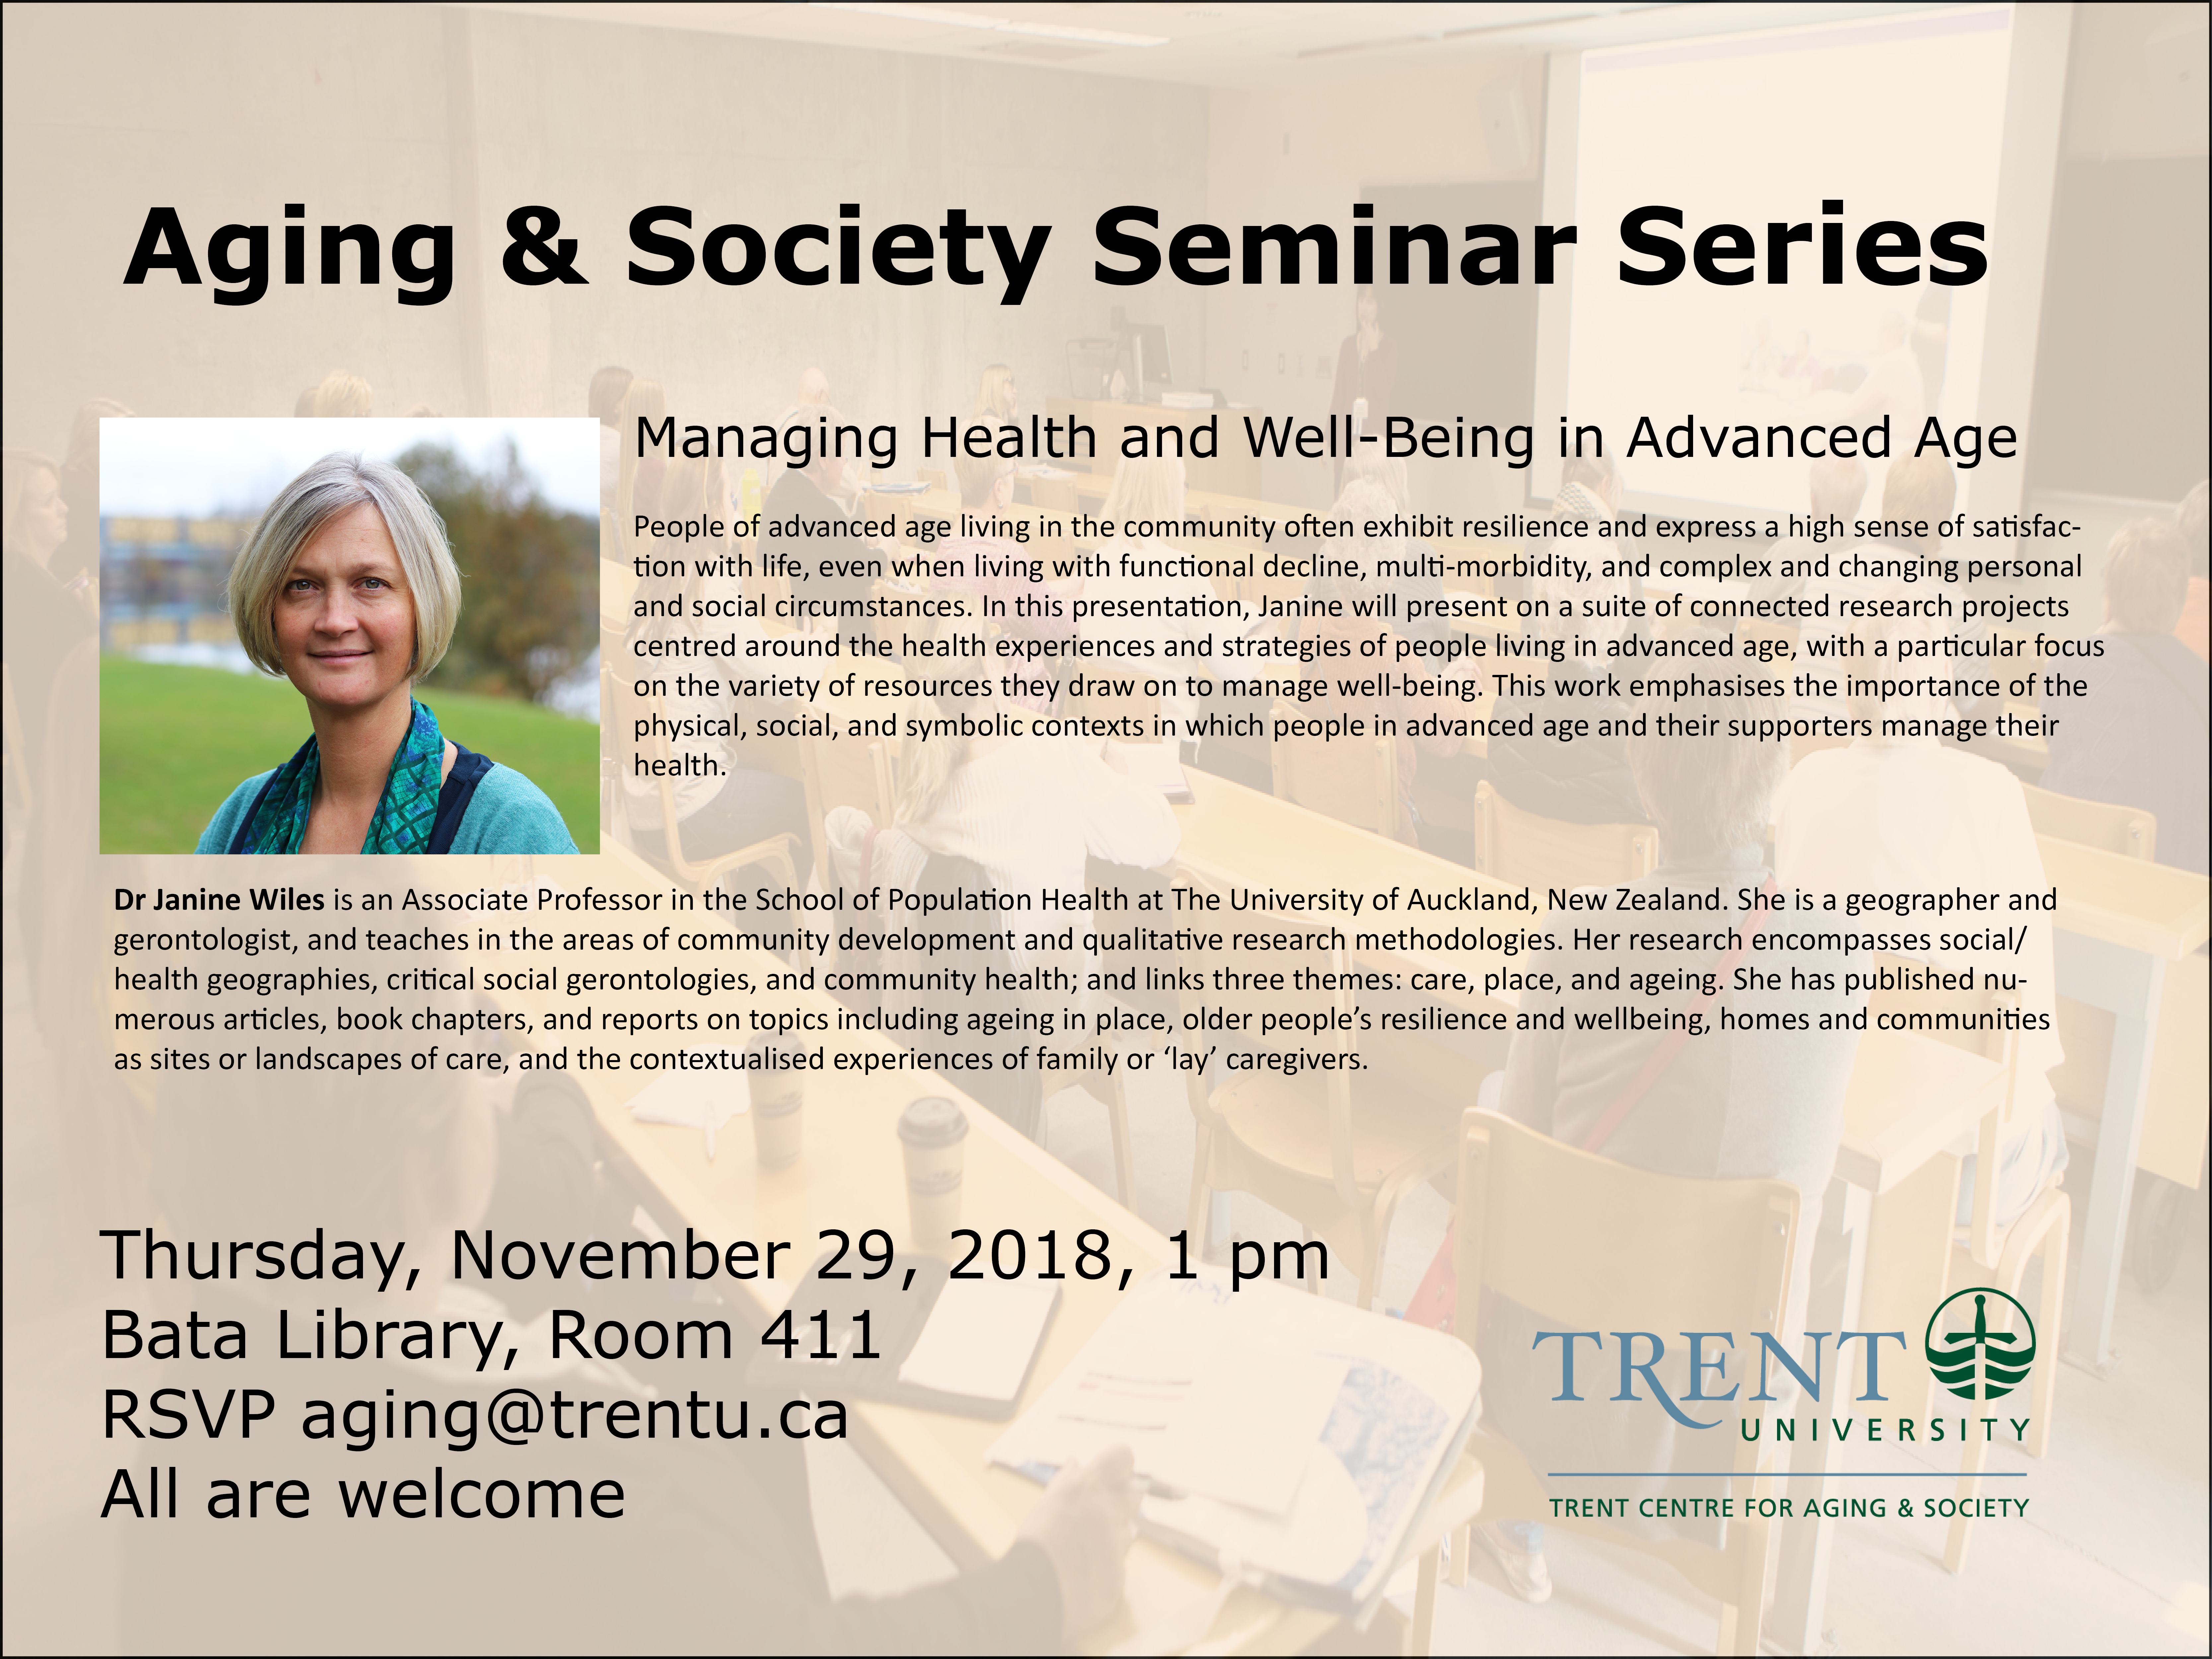 Poster of the Aging & Society Seminar Series